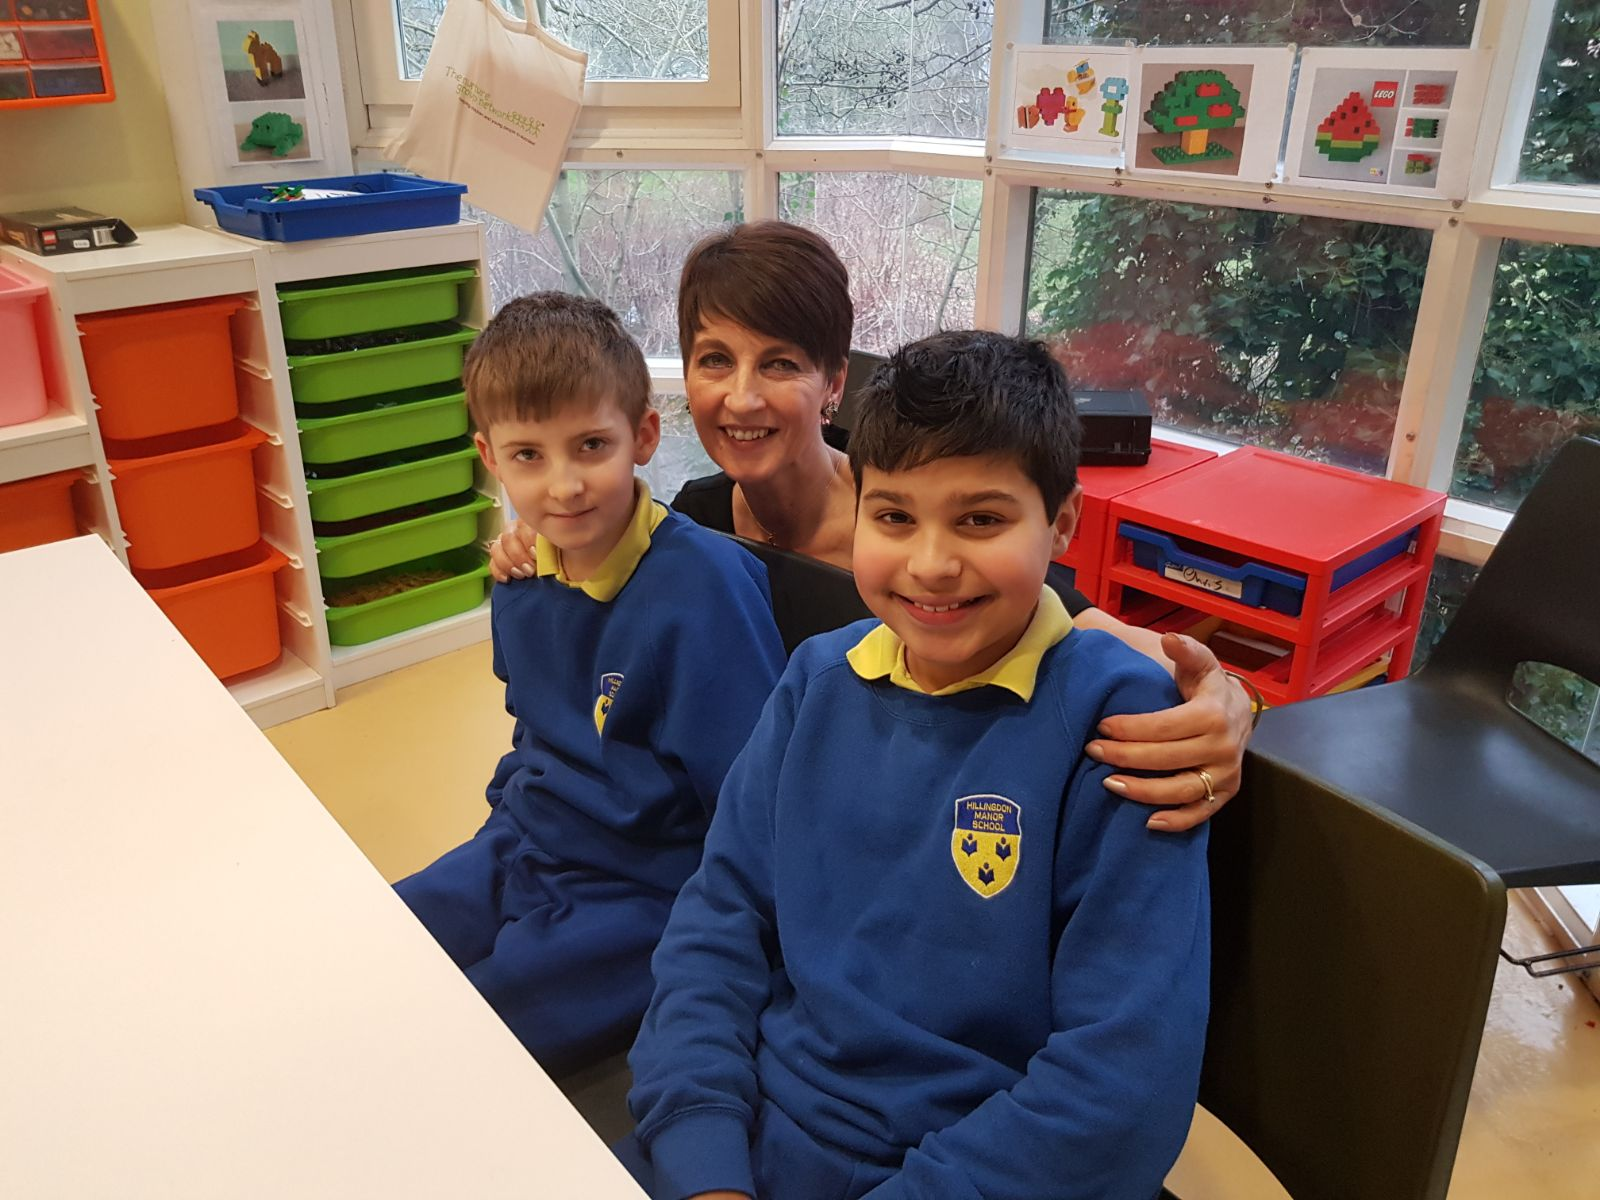 Staff And Students From Hillingdon Manor School Are Featured On The Chrissy B Show